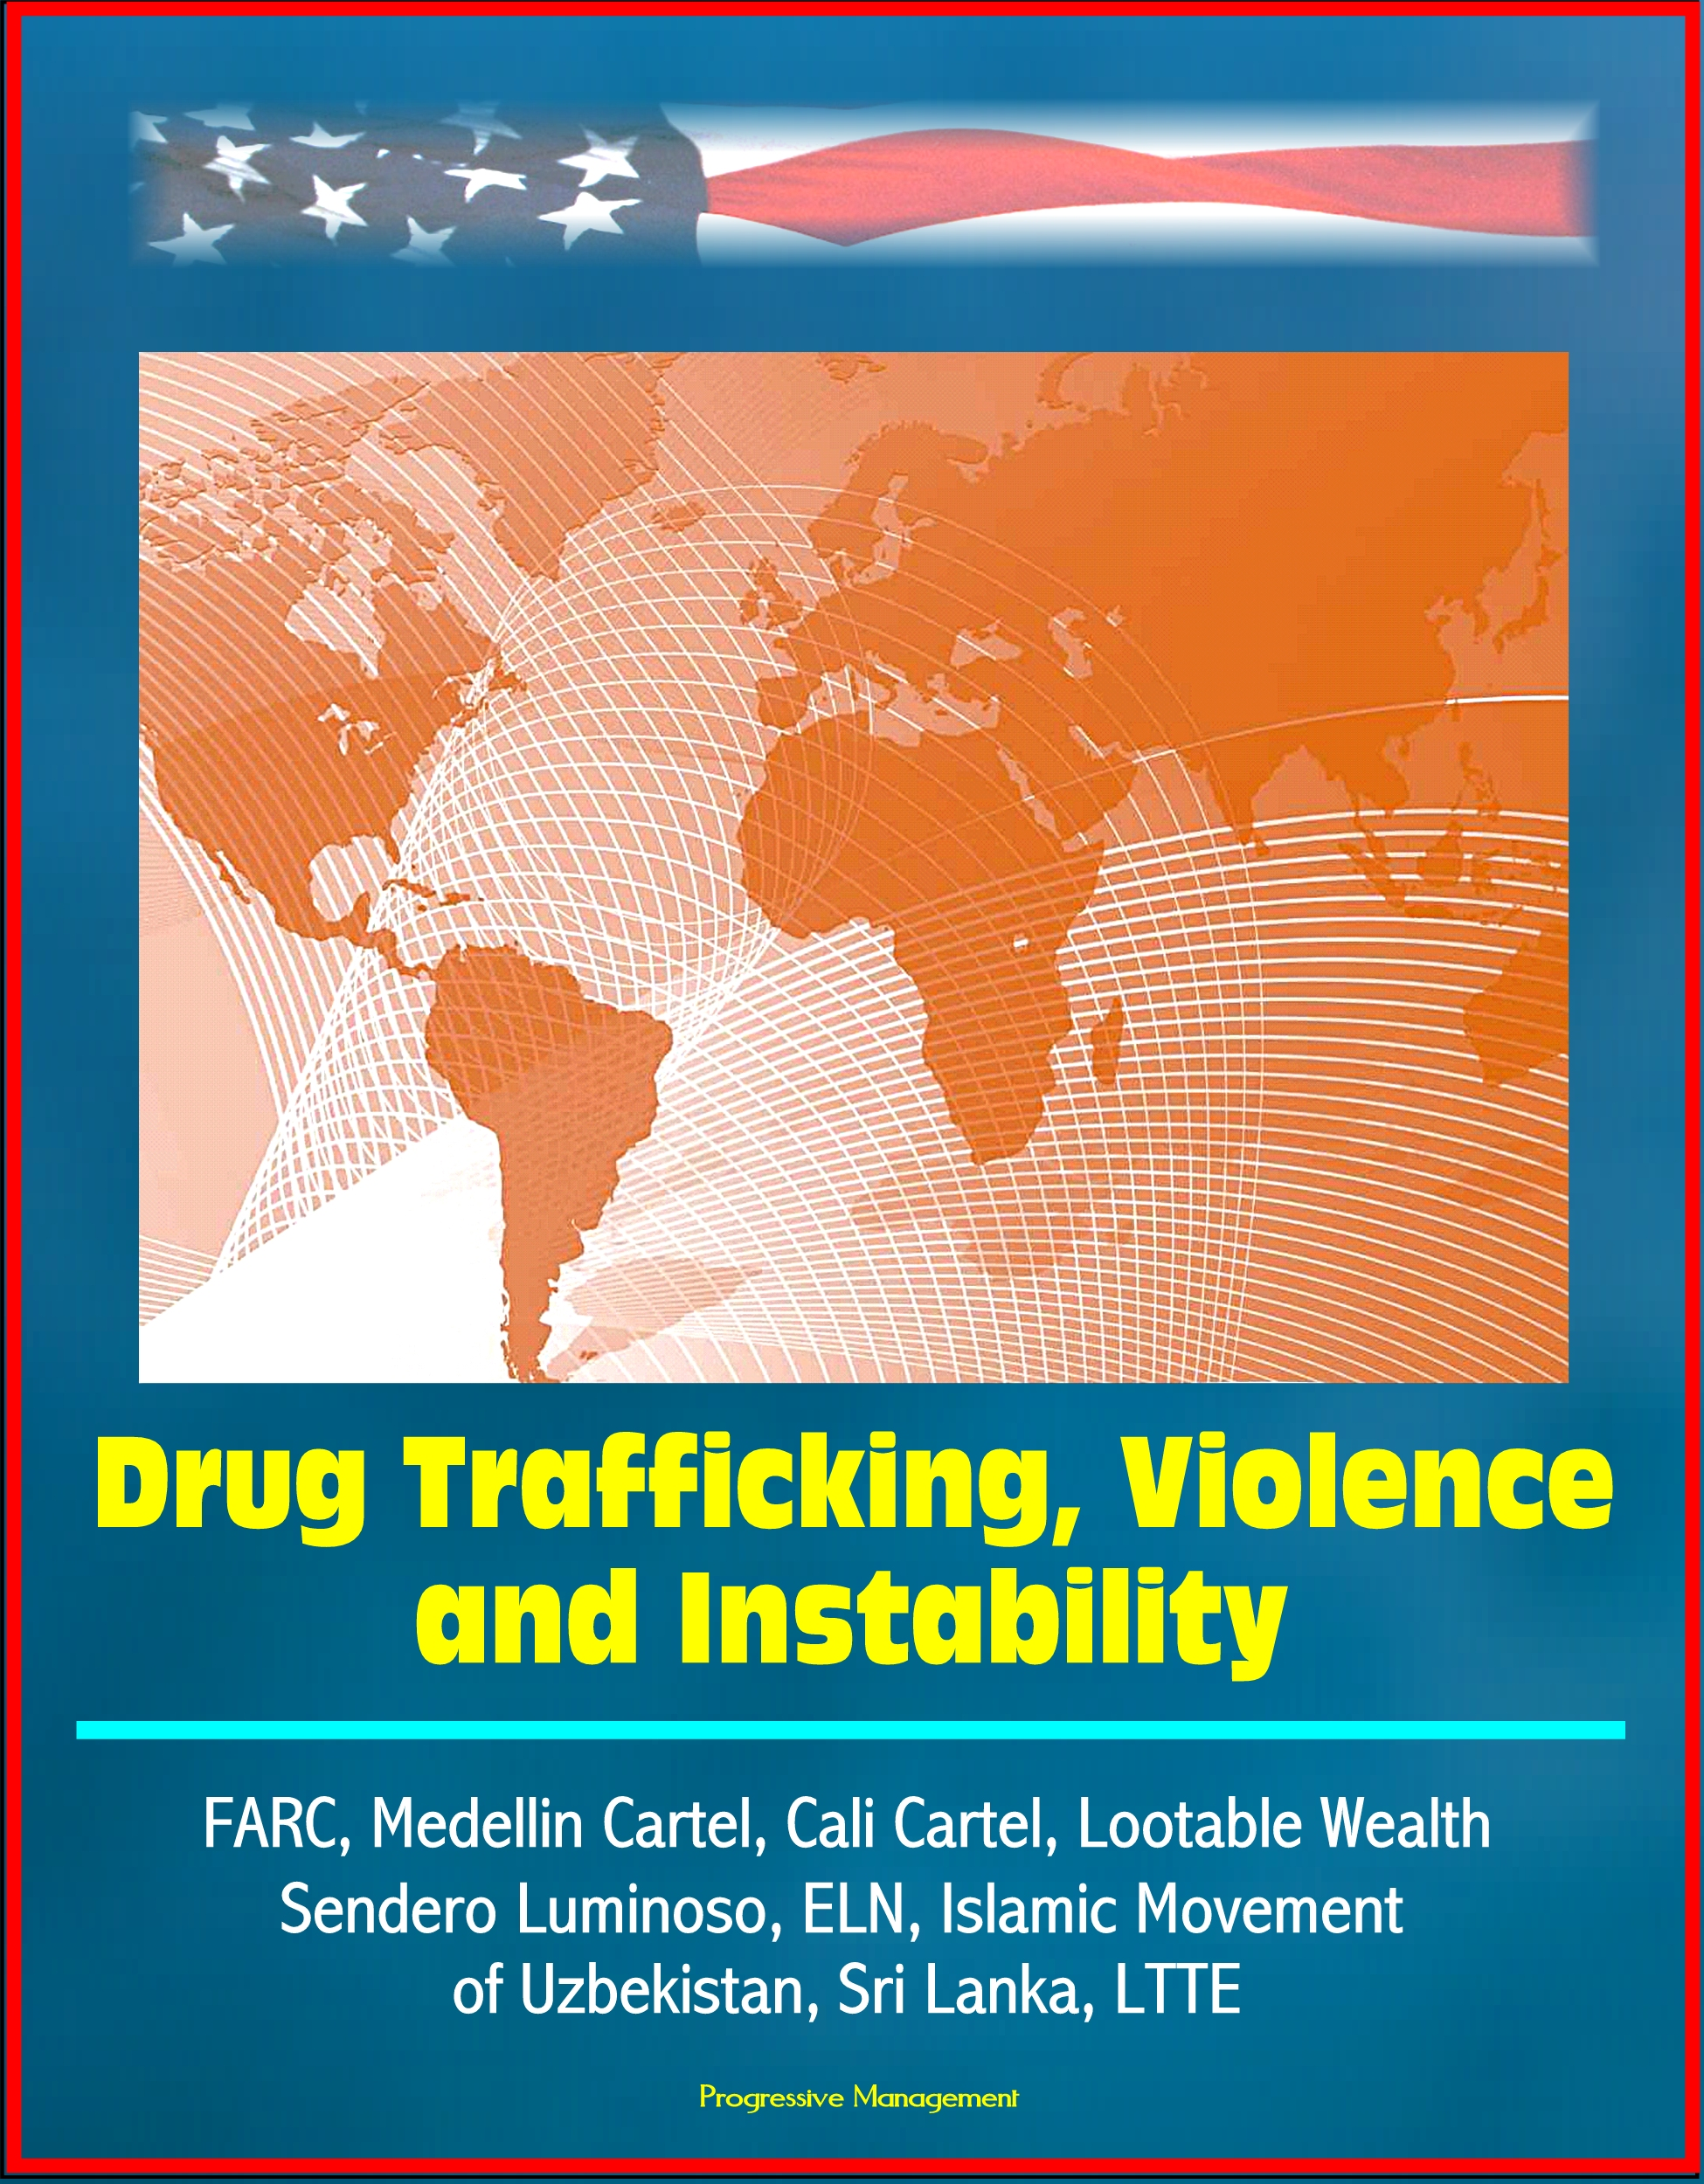 drug cartels and violence essay Essay express examples of essays and research papers on many topics :: drug cartel-related violence in mexico: an analysis [6903] consequently, colombian drug cartels began subcontracting with mexican drug trafficking organizations to smuggle drugs across the mexican.